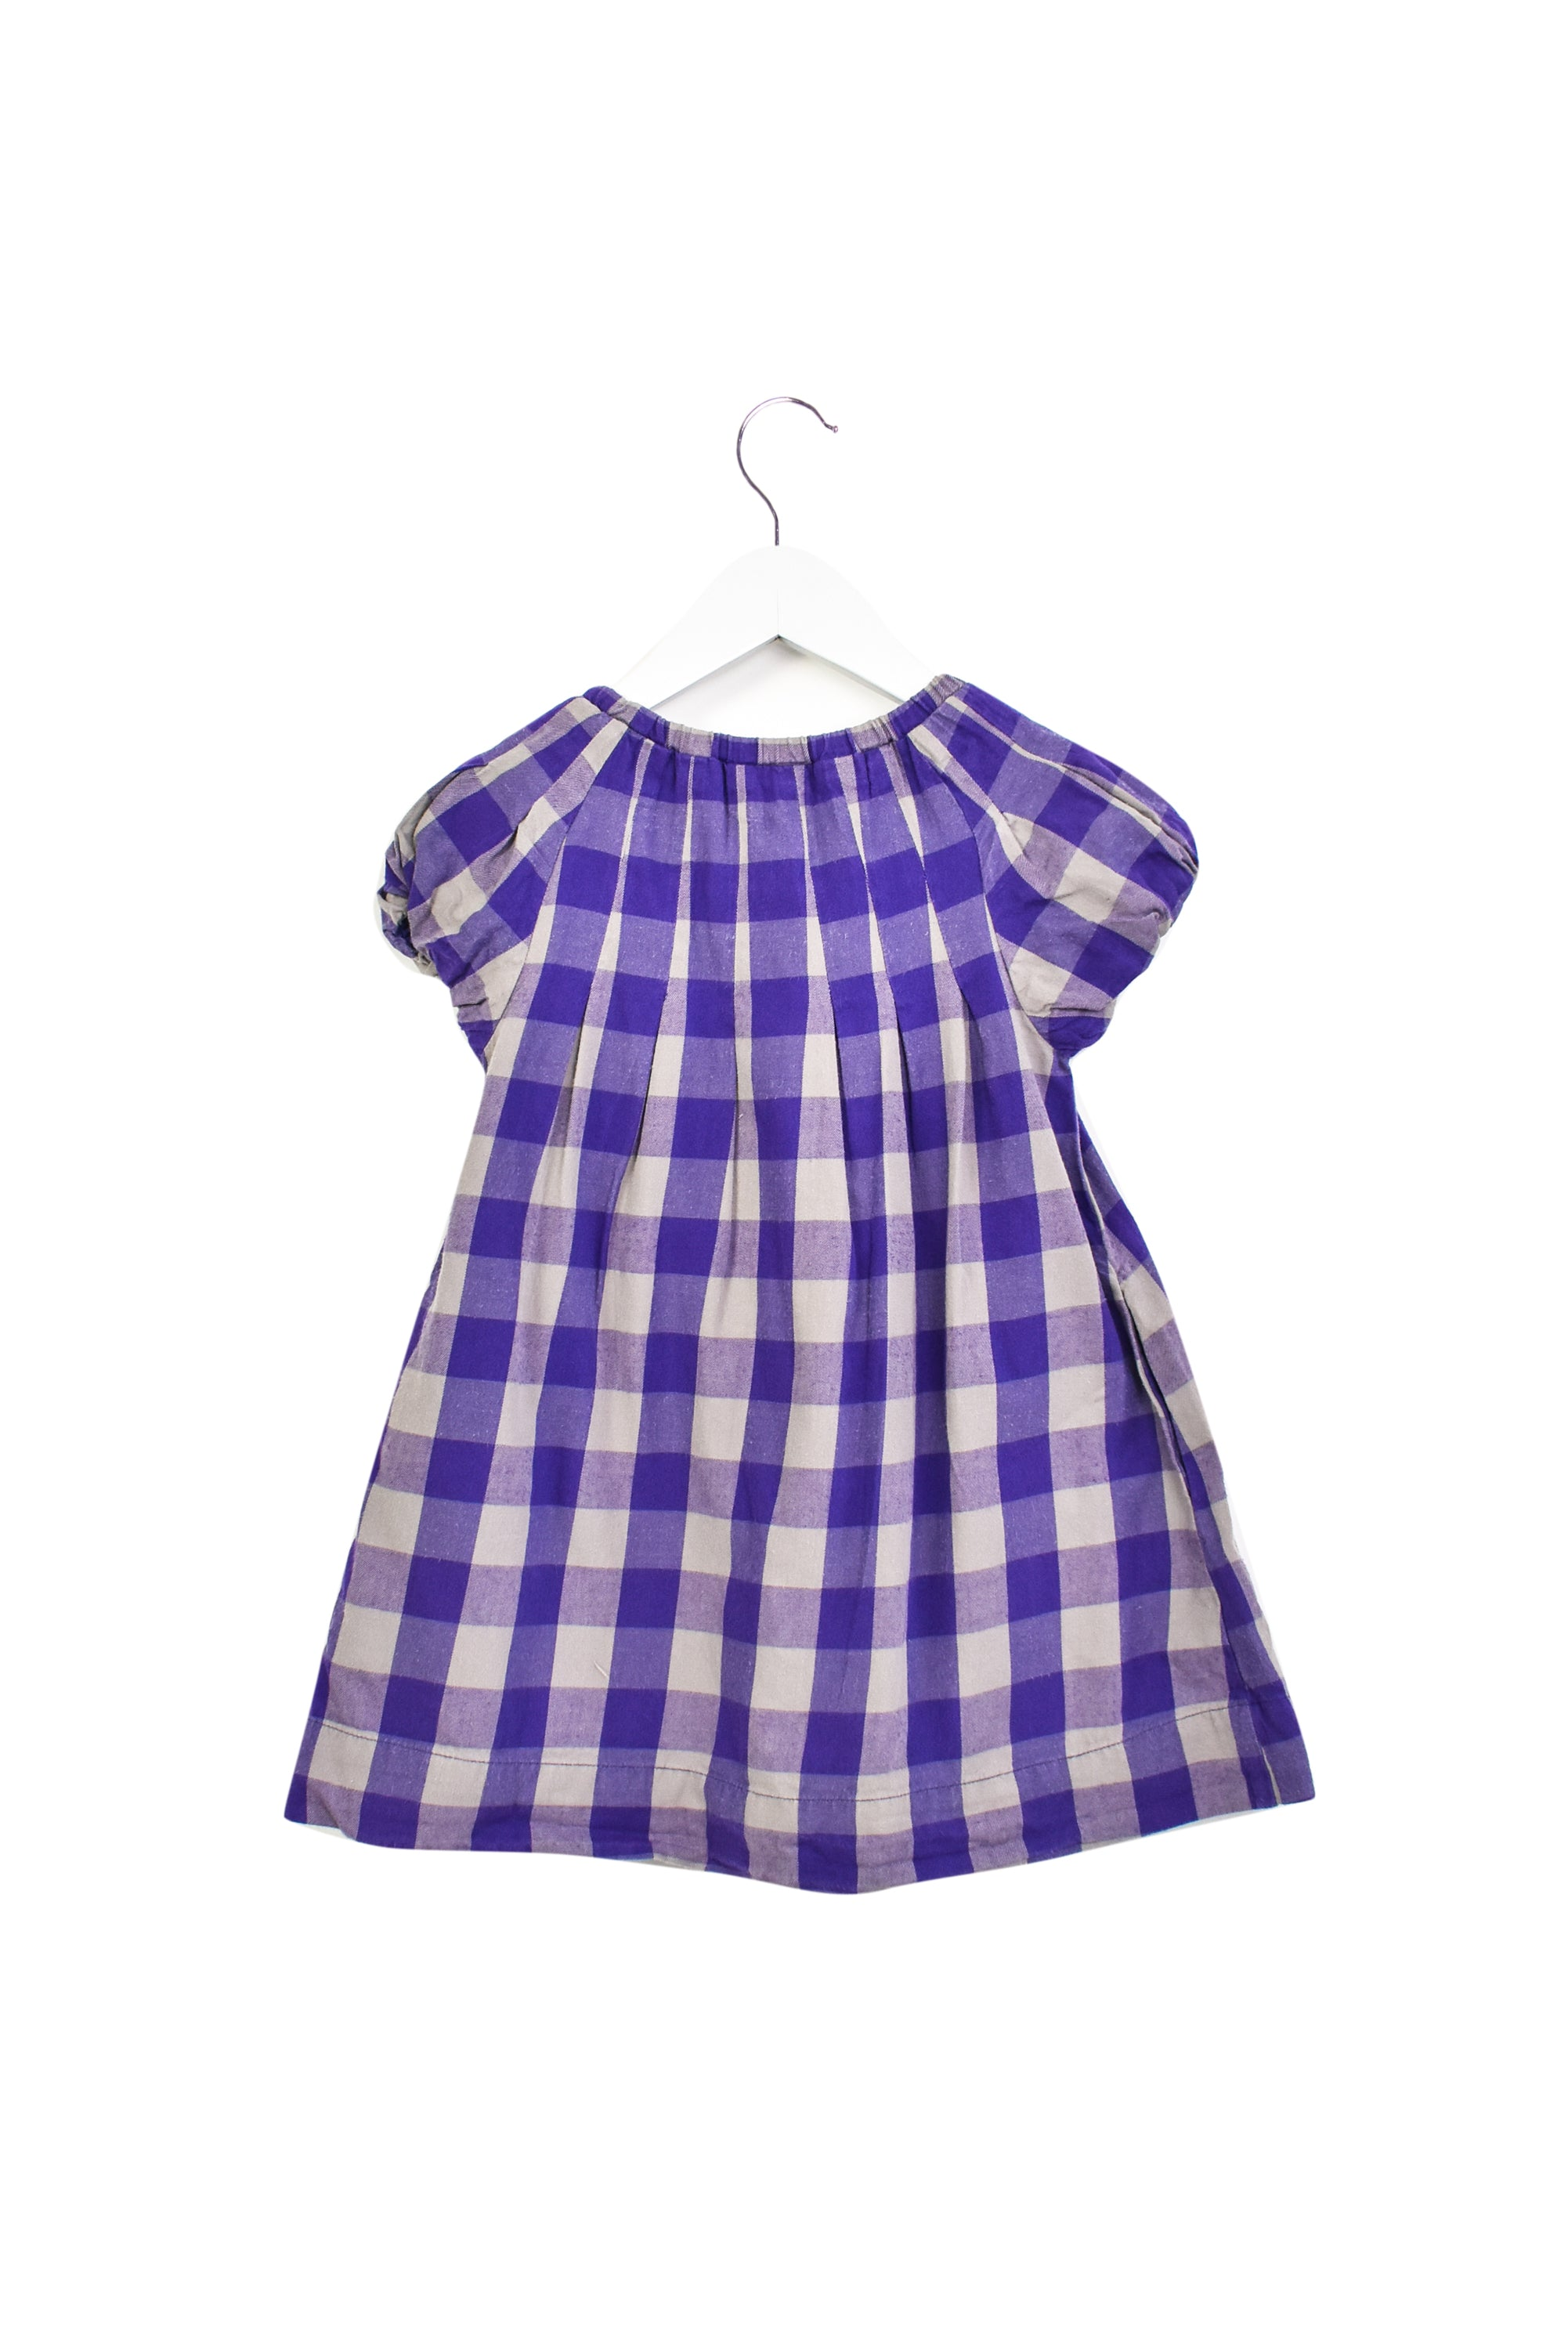 10013269 Boden Kids ~ Dress 3-4T at Retykle